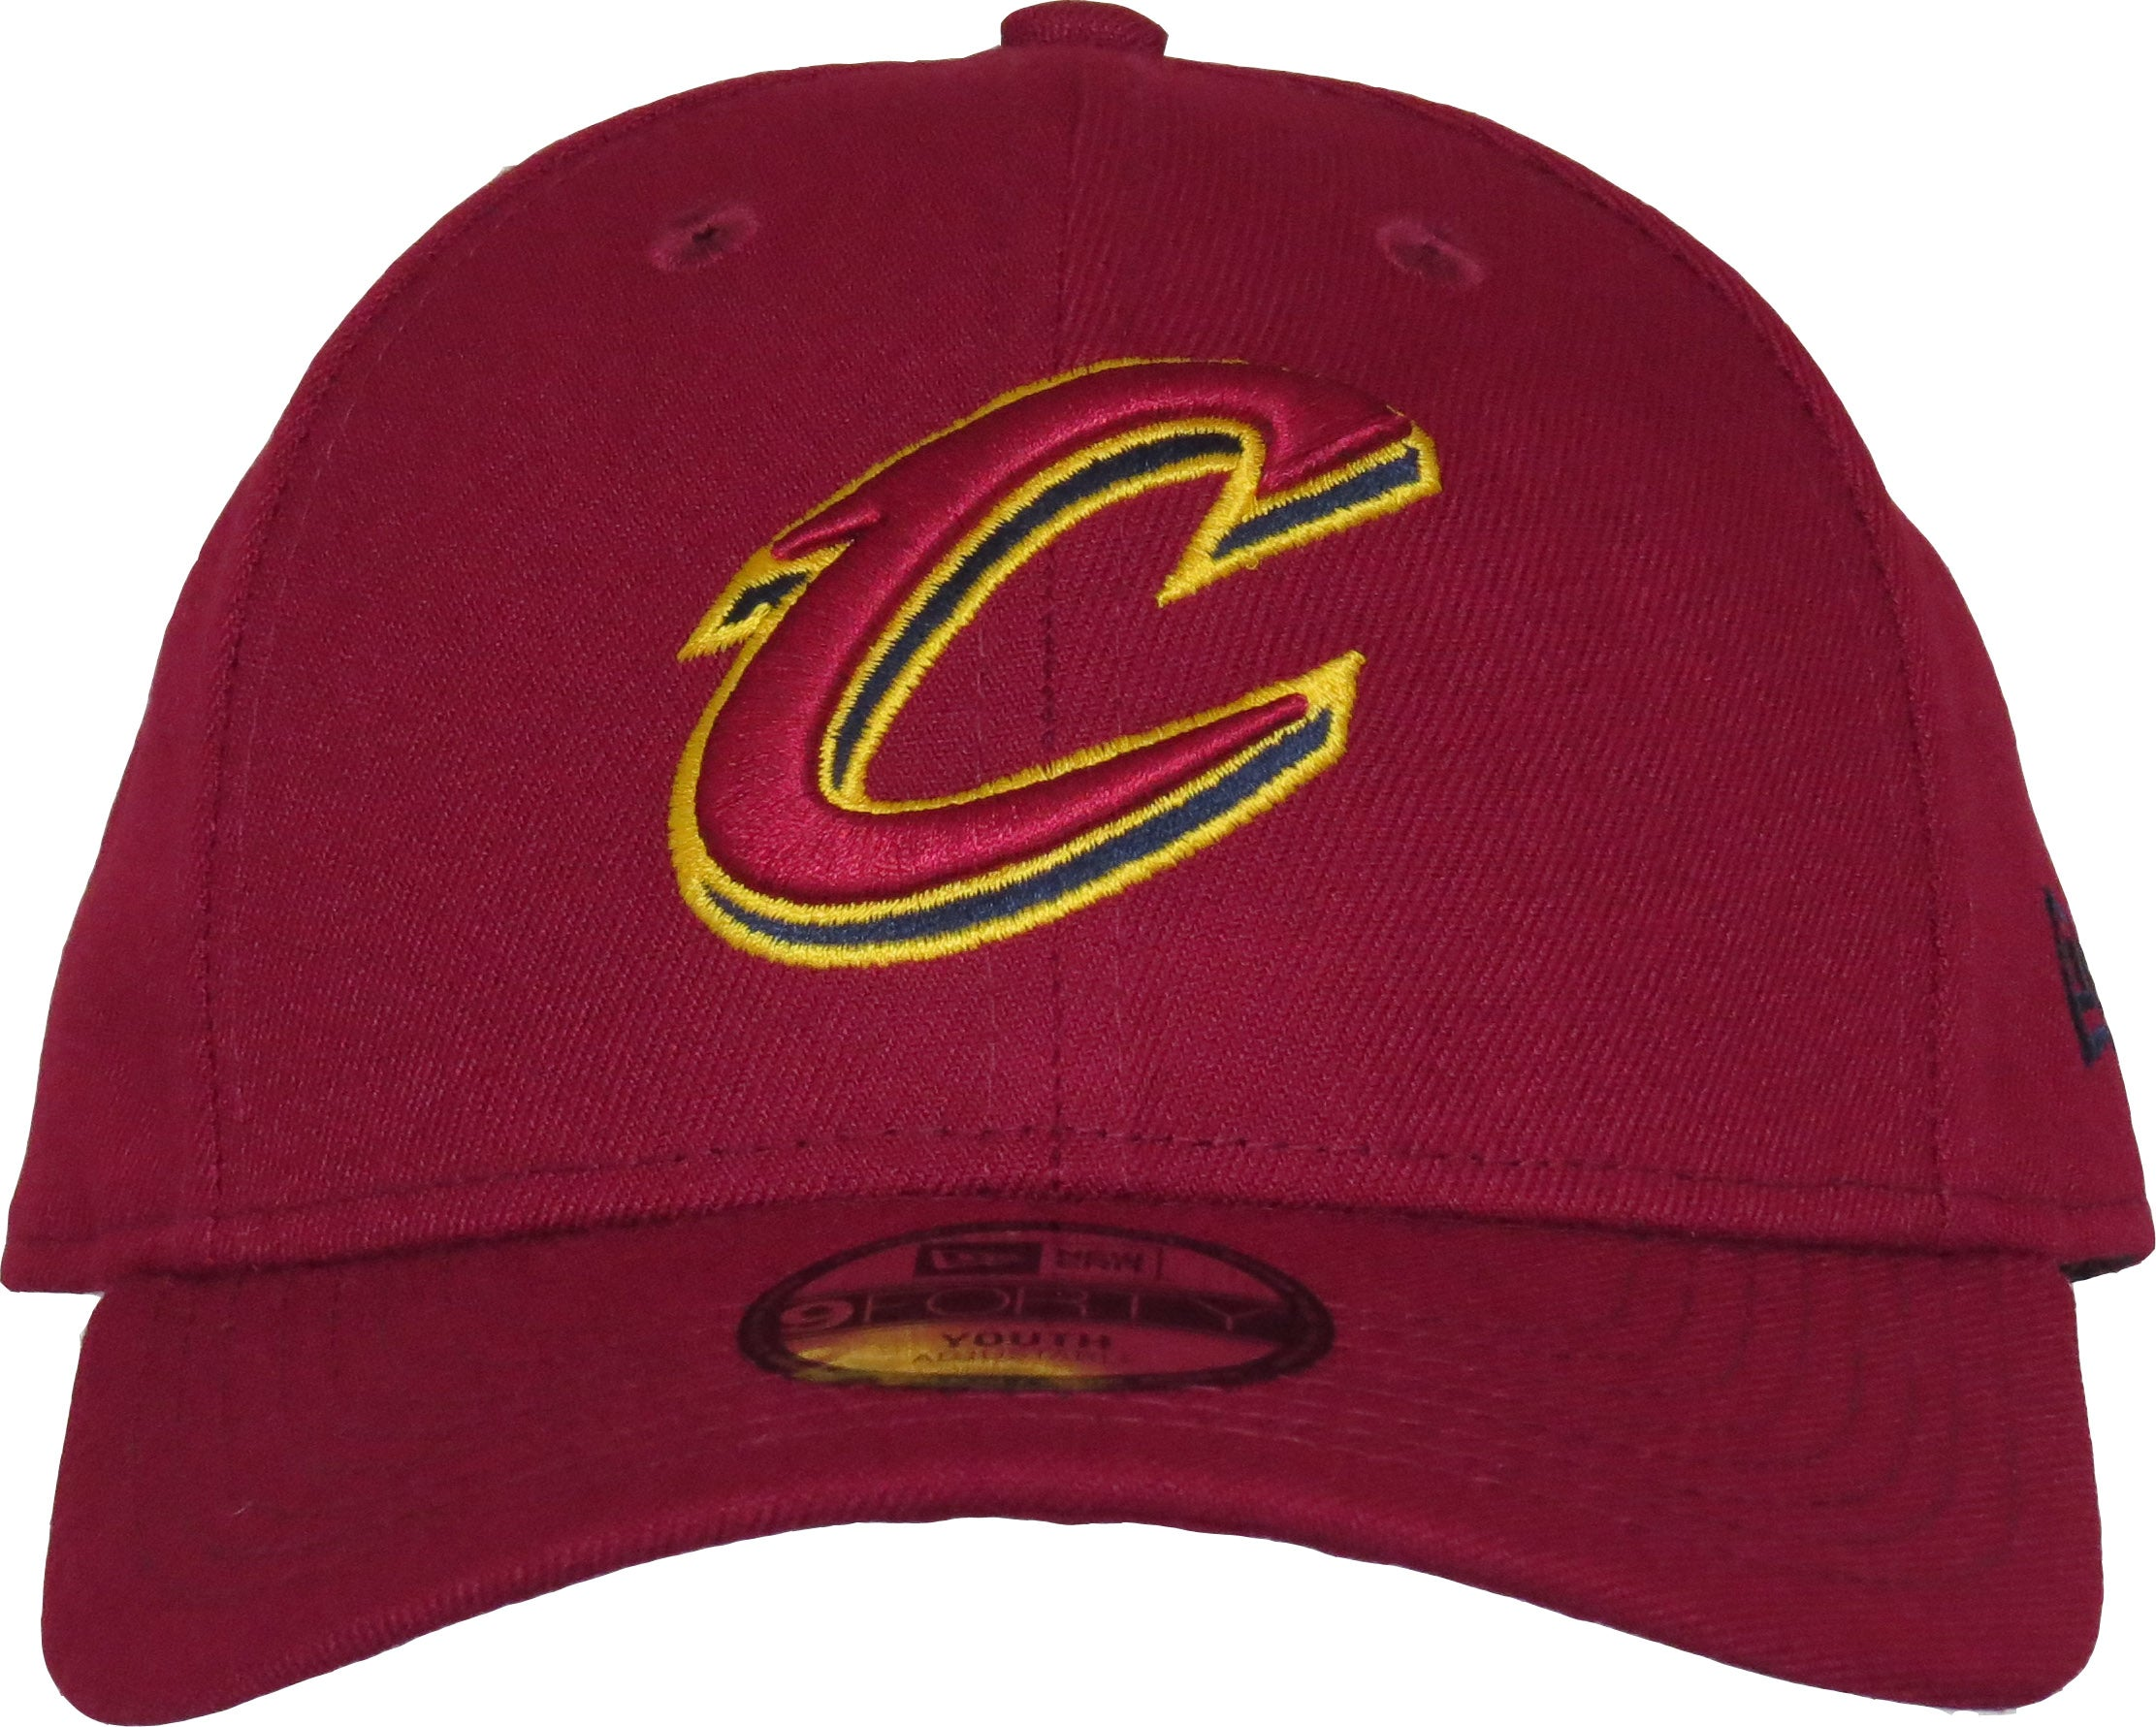 dd30baec647 ... Cleveland Cavaliers Kids New Era 940 NBA The League Cap (Age 5 - 10  years ...